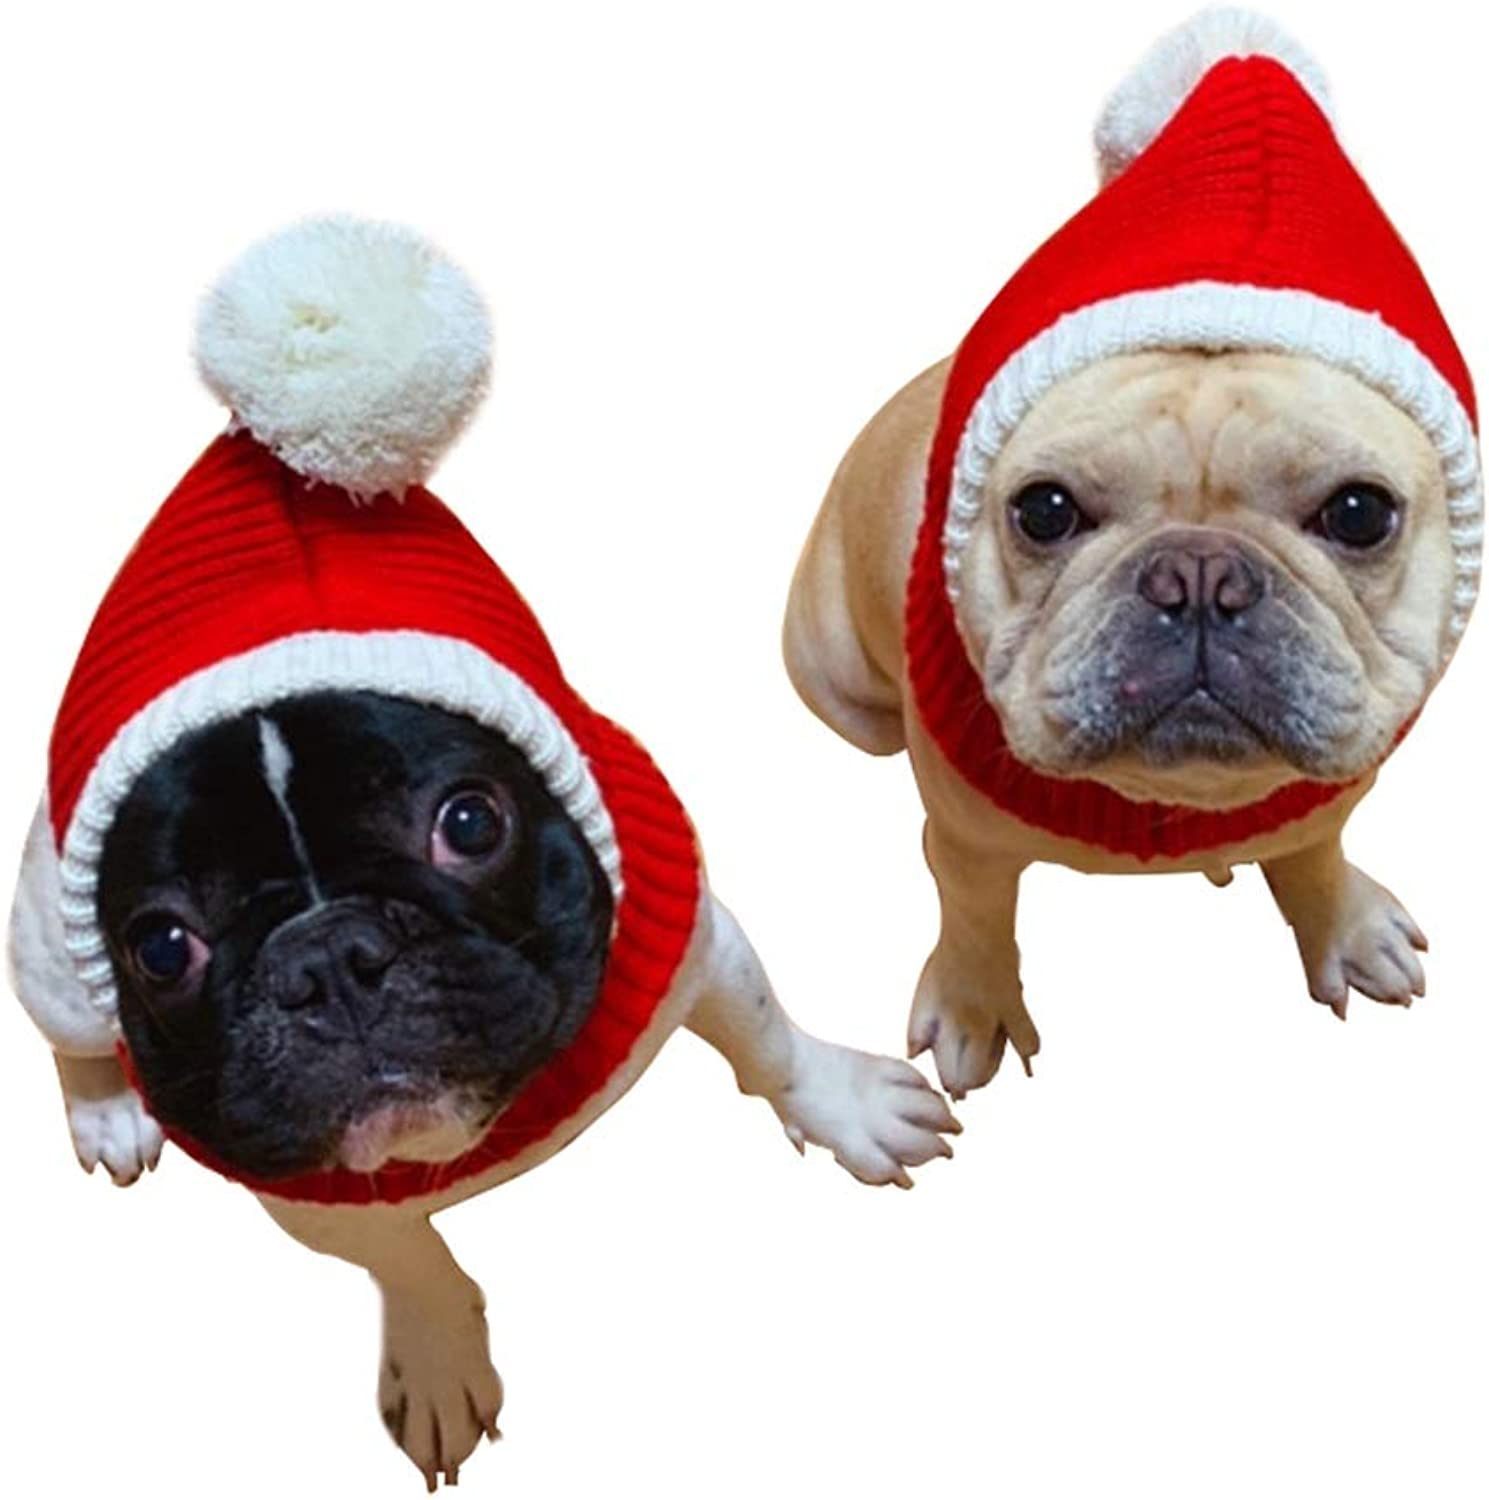 Accessories Costume Pet Cat Dog ROZKITCH Knit Xmas Pets Dogs